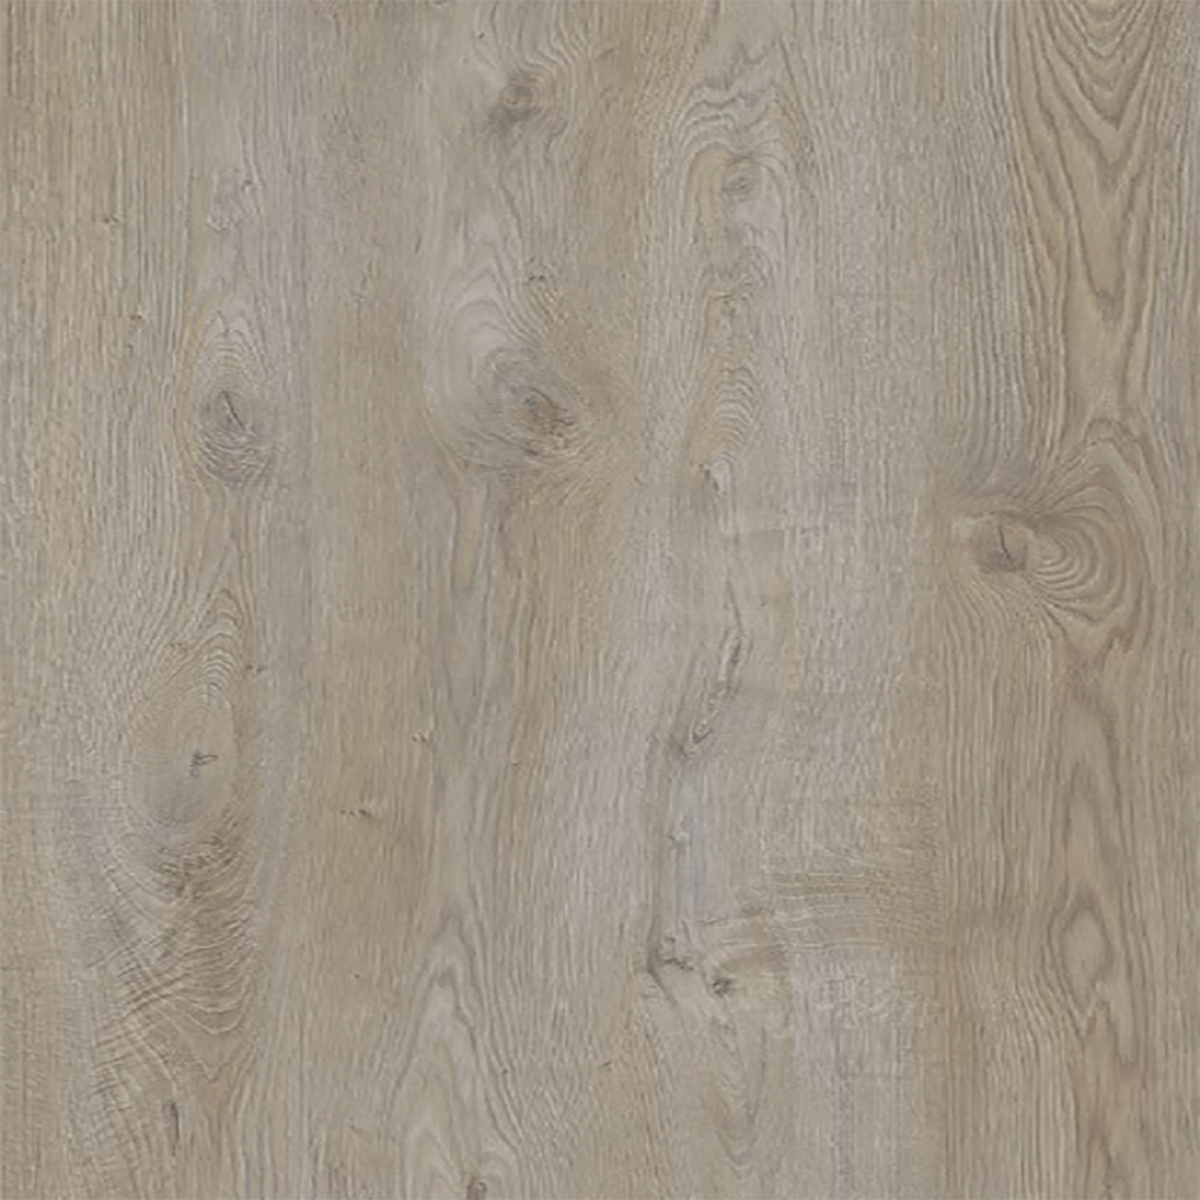 Sand 12.3mm Infiniti Laminate Flooring Image